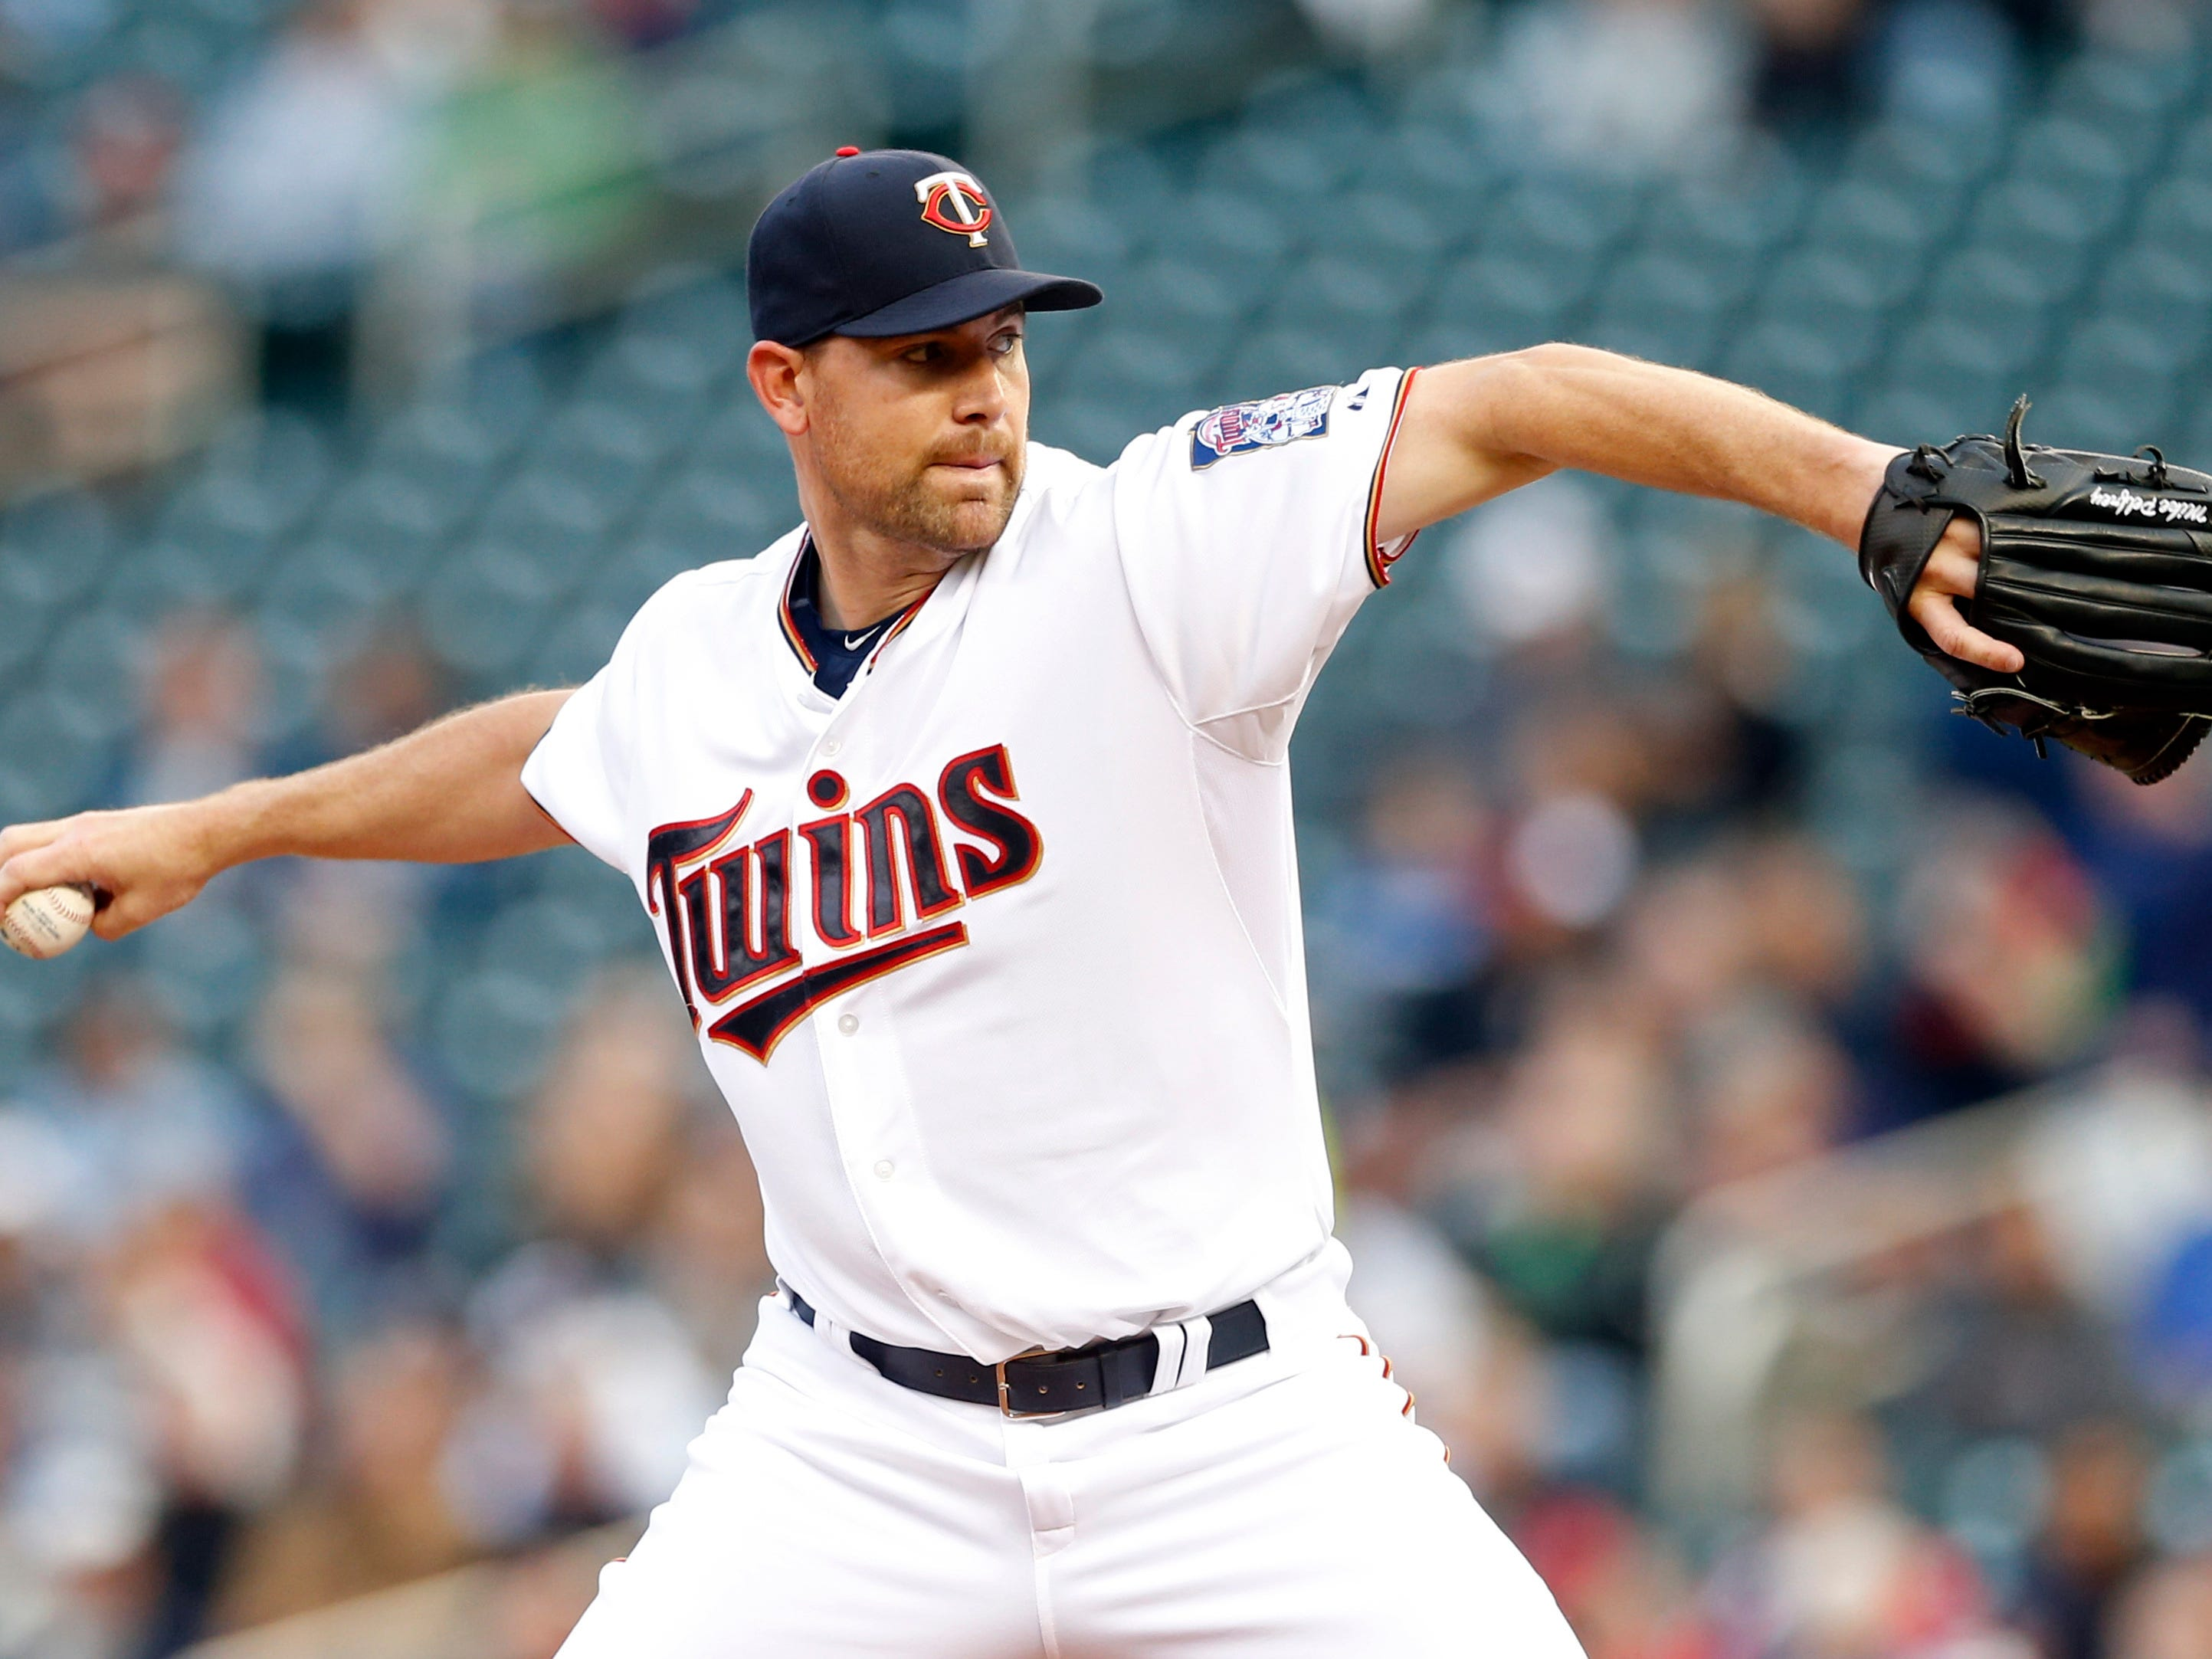 Minnesota Twins pitcher Mike Pelfrey throws against the Detroit Tigers in the first inning of a baseball game, Tuesday, April 28, 2015, in Minneapolis. (AP Photo/Jim Mone)